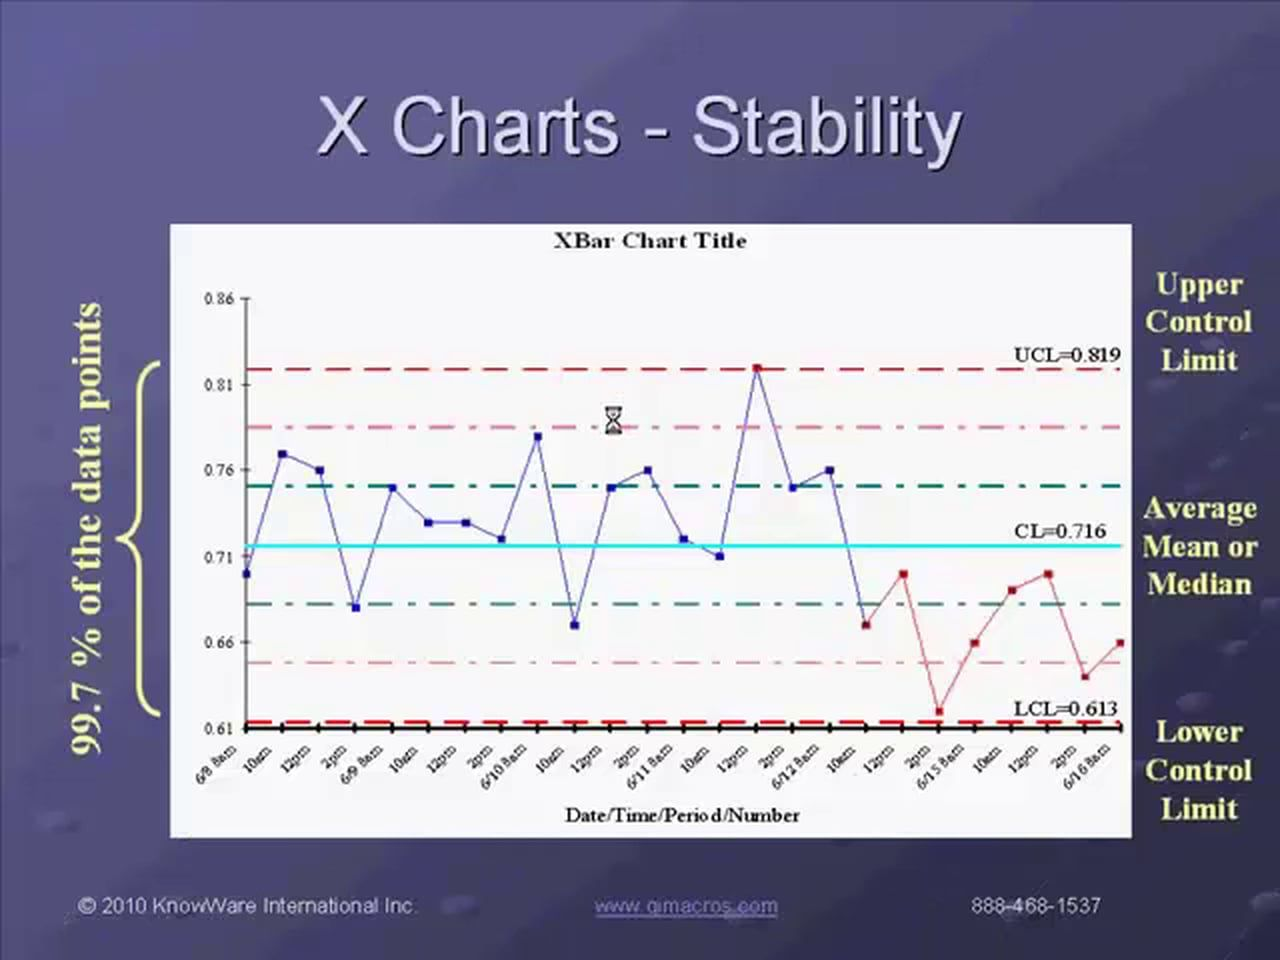 Overview of how to create six sigma control charts pareto charts overview of how to create six sigma control charts pareto charts and histograms in excel using qi macros qimacros six sigma pinterest chart nvjuhfo Choice Image